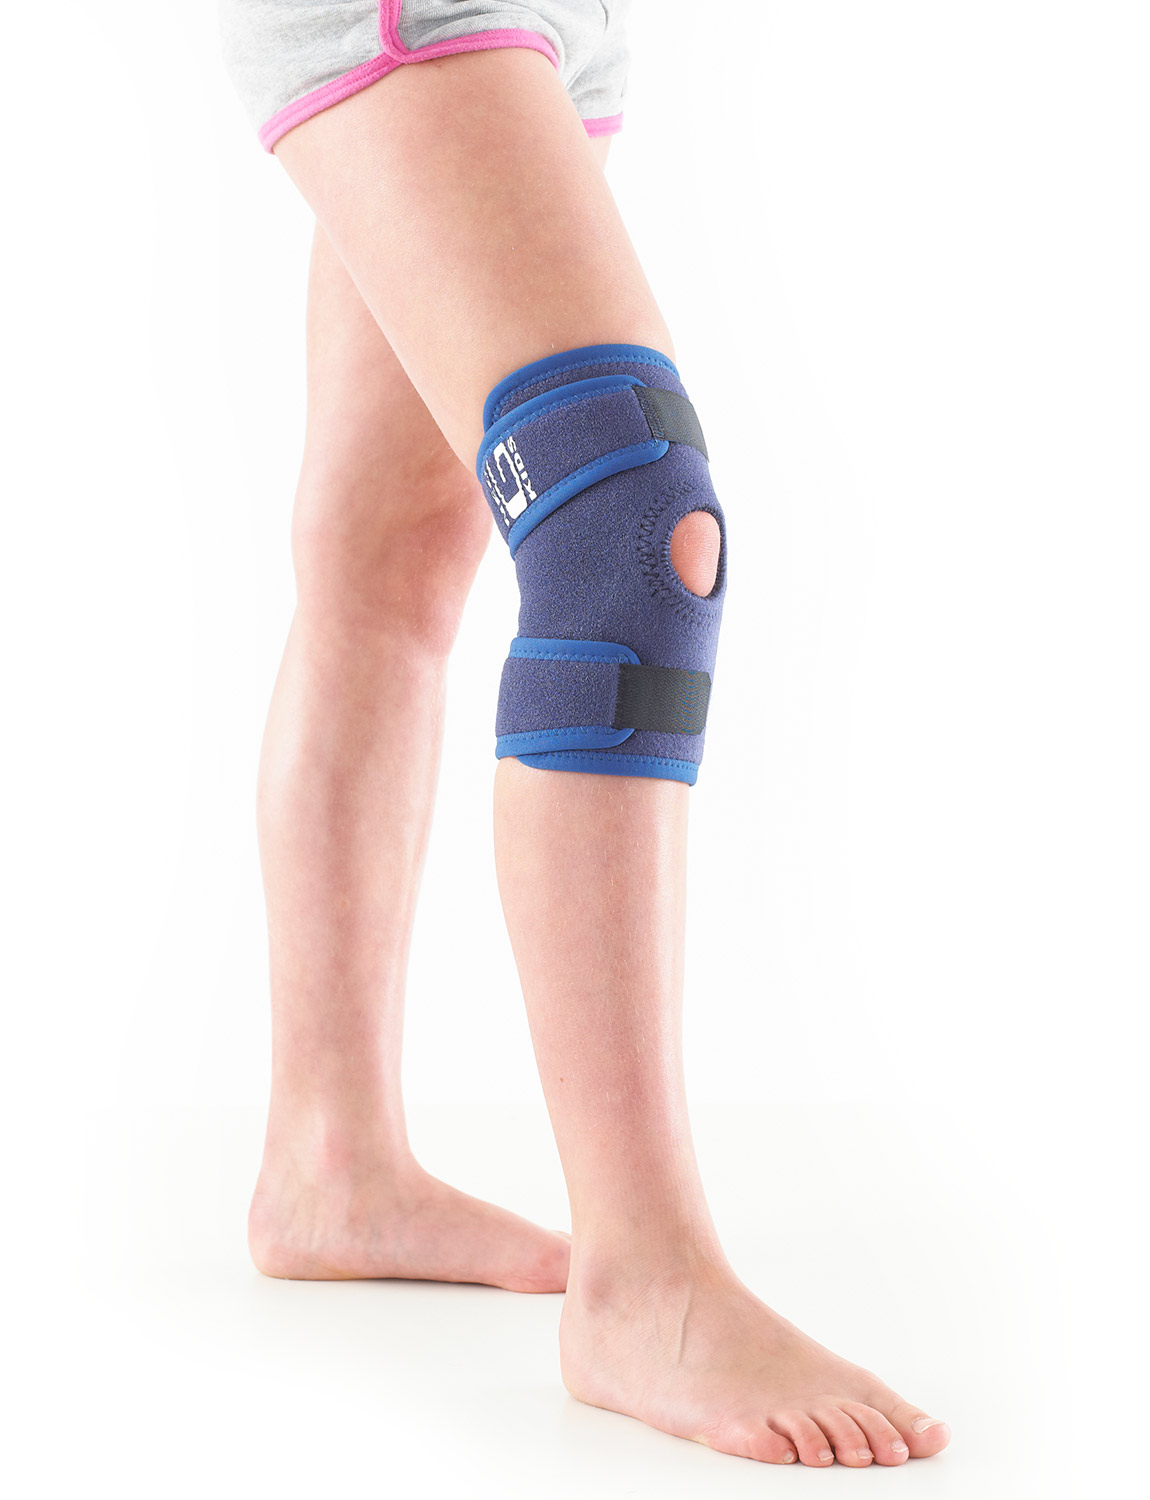 885K - KIDS OPEN KNEE SUPPORT  Specifically designed for the younger wearer and offers dynamic support and adjustable compression to the knee complex without restricting movement. The open patella design with stitched buttress helps with patellar tracking whilst providing added support and helping with overall stability by eliminating glide and twisting at the knee. Weight bearing pressure during movement is more evenly distributed over the joint helping with arthritic and meniscus pain. The durable, heat therapeutic neoprene helps with juvenile arthritis, chronic aches and stiffness.